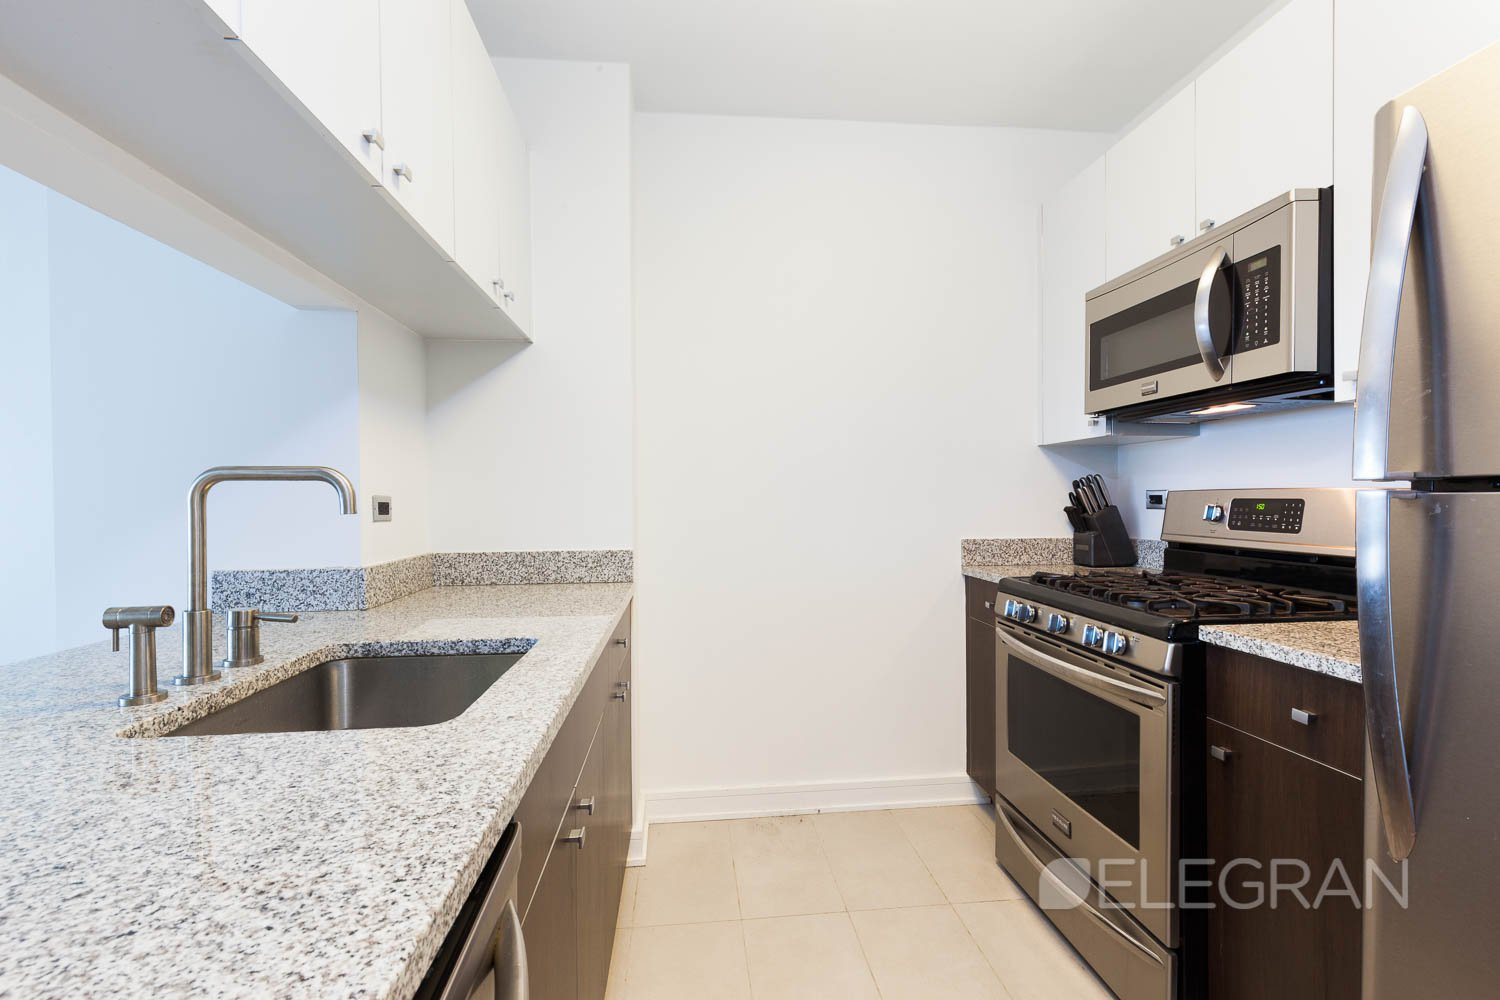 Linc Lic, 4310 CRESCENT ST   Apartments for Sale & Rent in